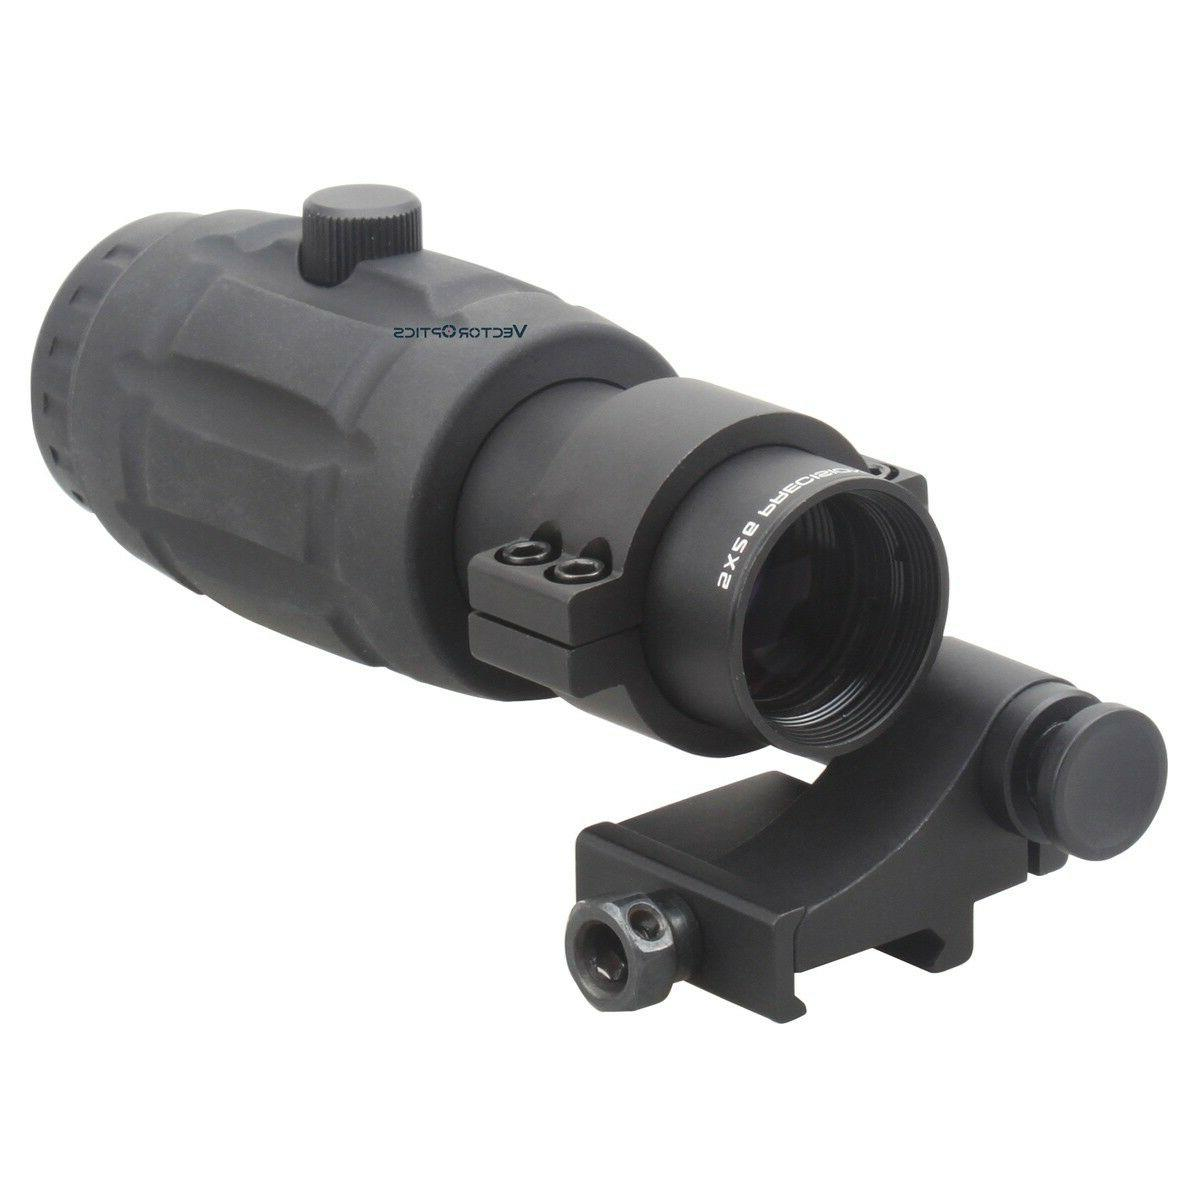 tactical 5x magnifier scope for red dot